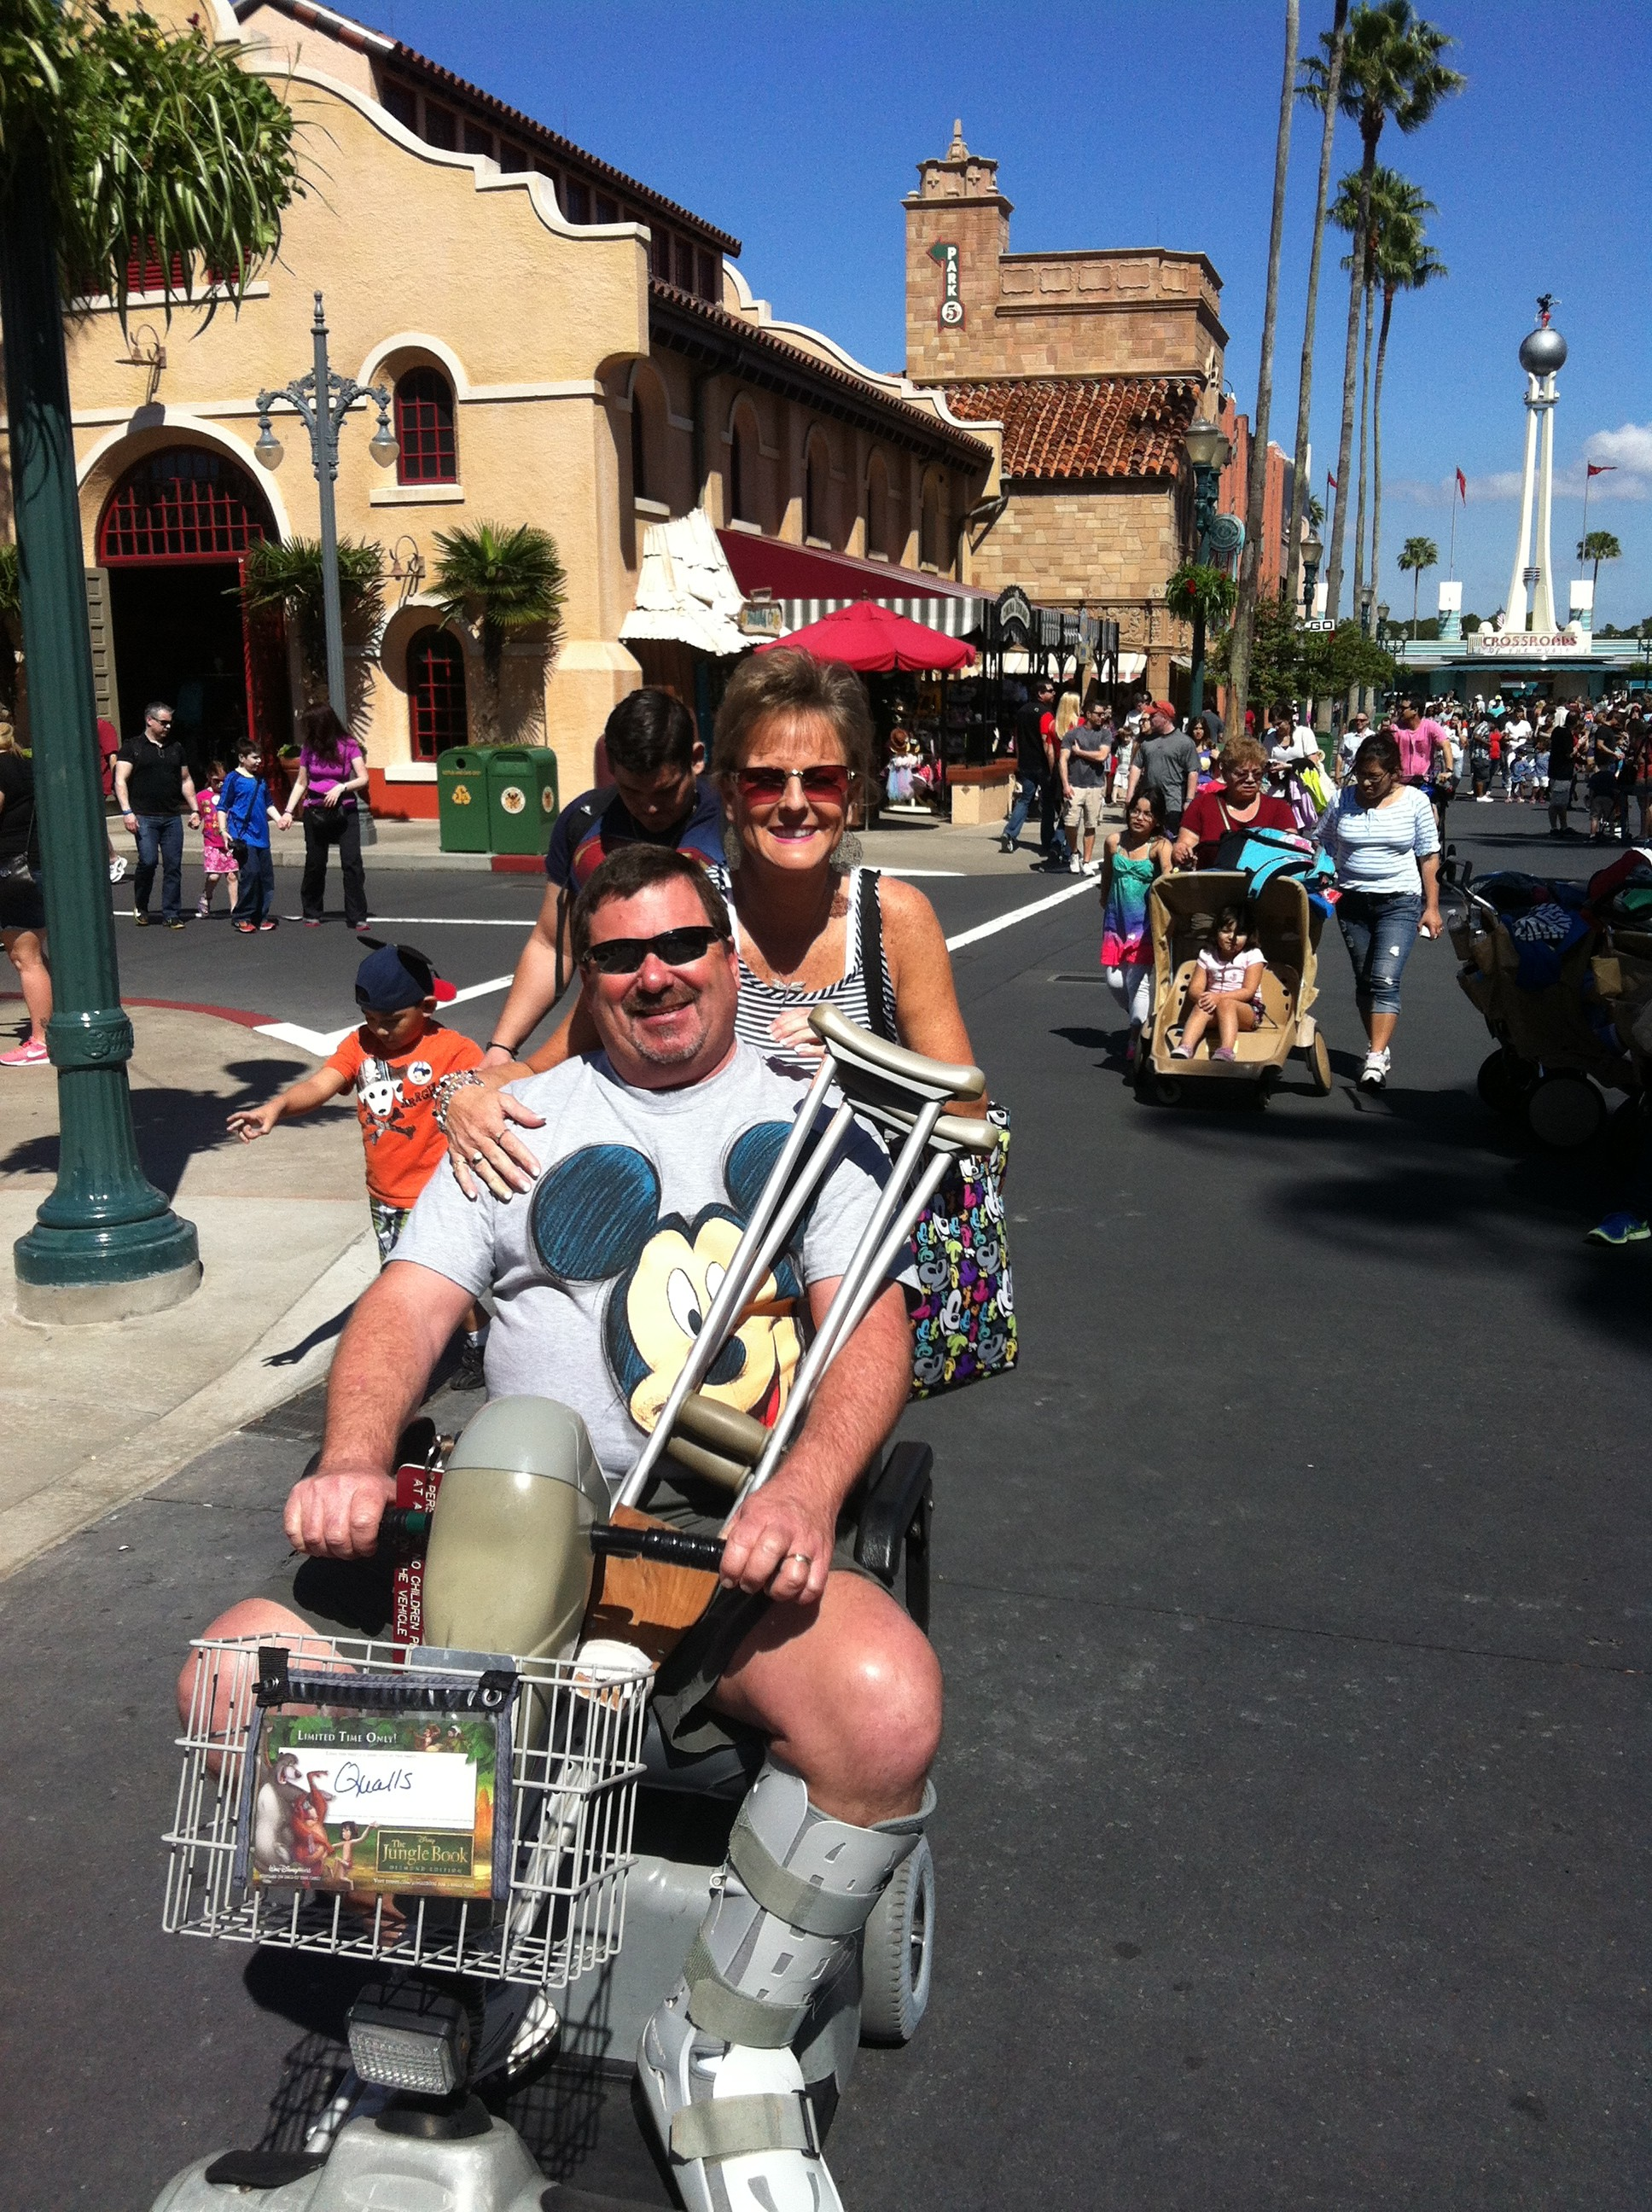 Injuries Happen Even at Walt Disney World - Tips from the